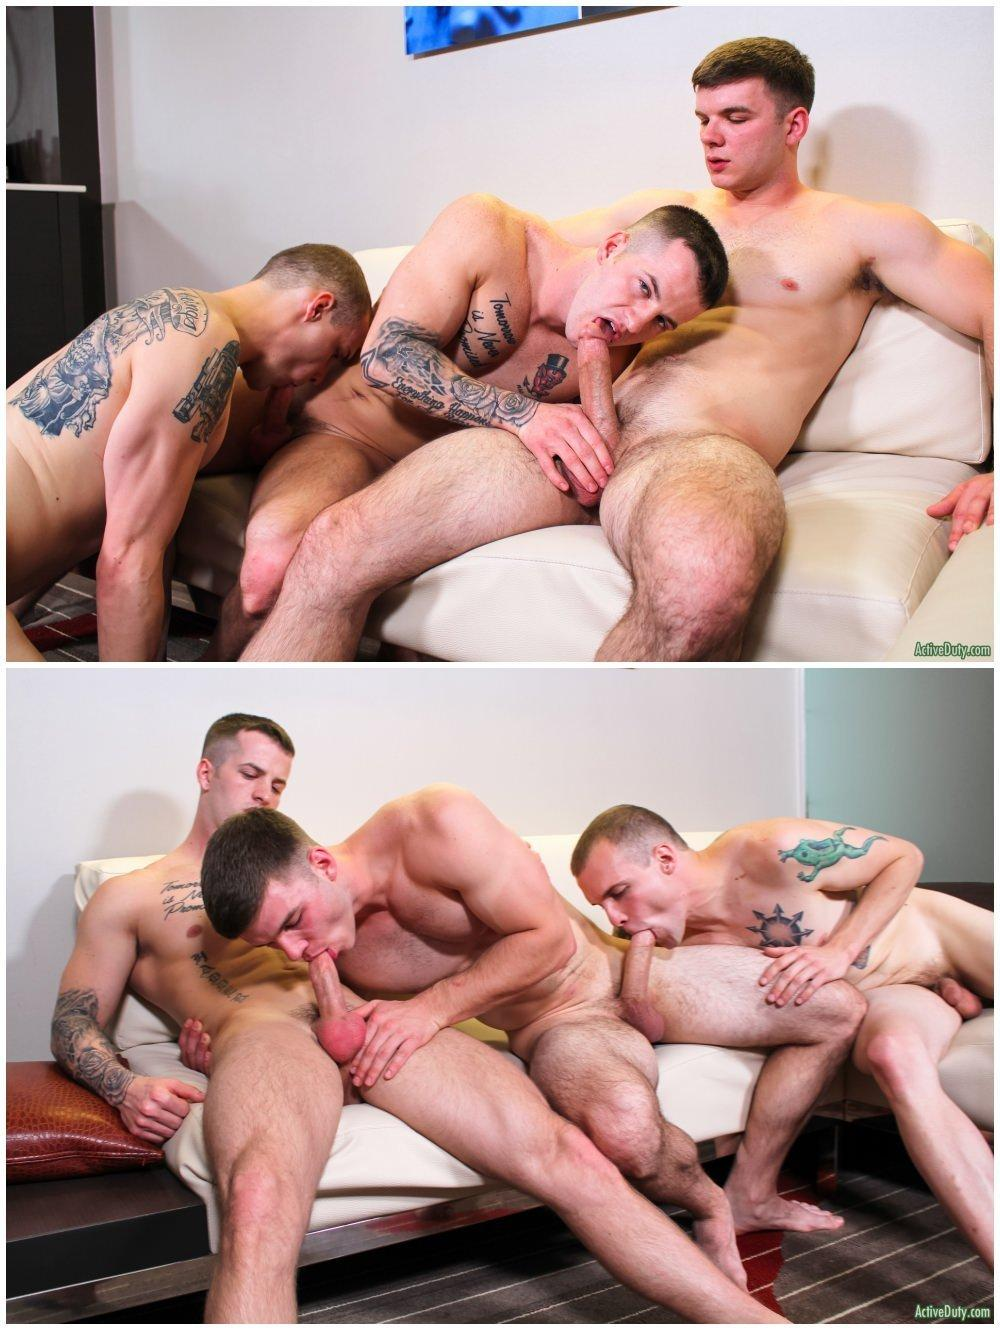 Free gay porn threesome